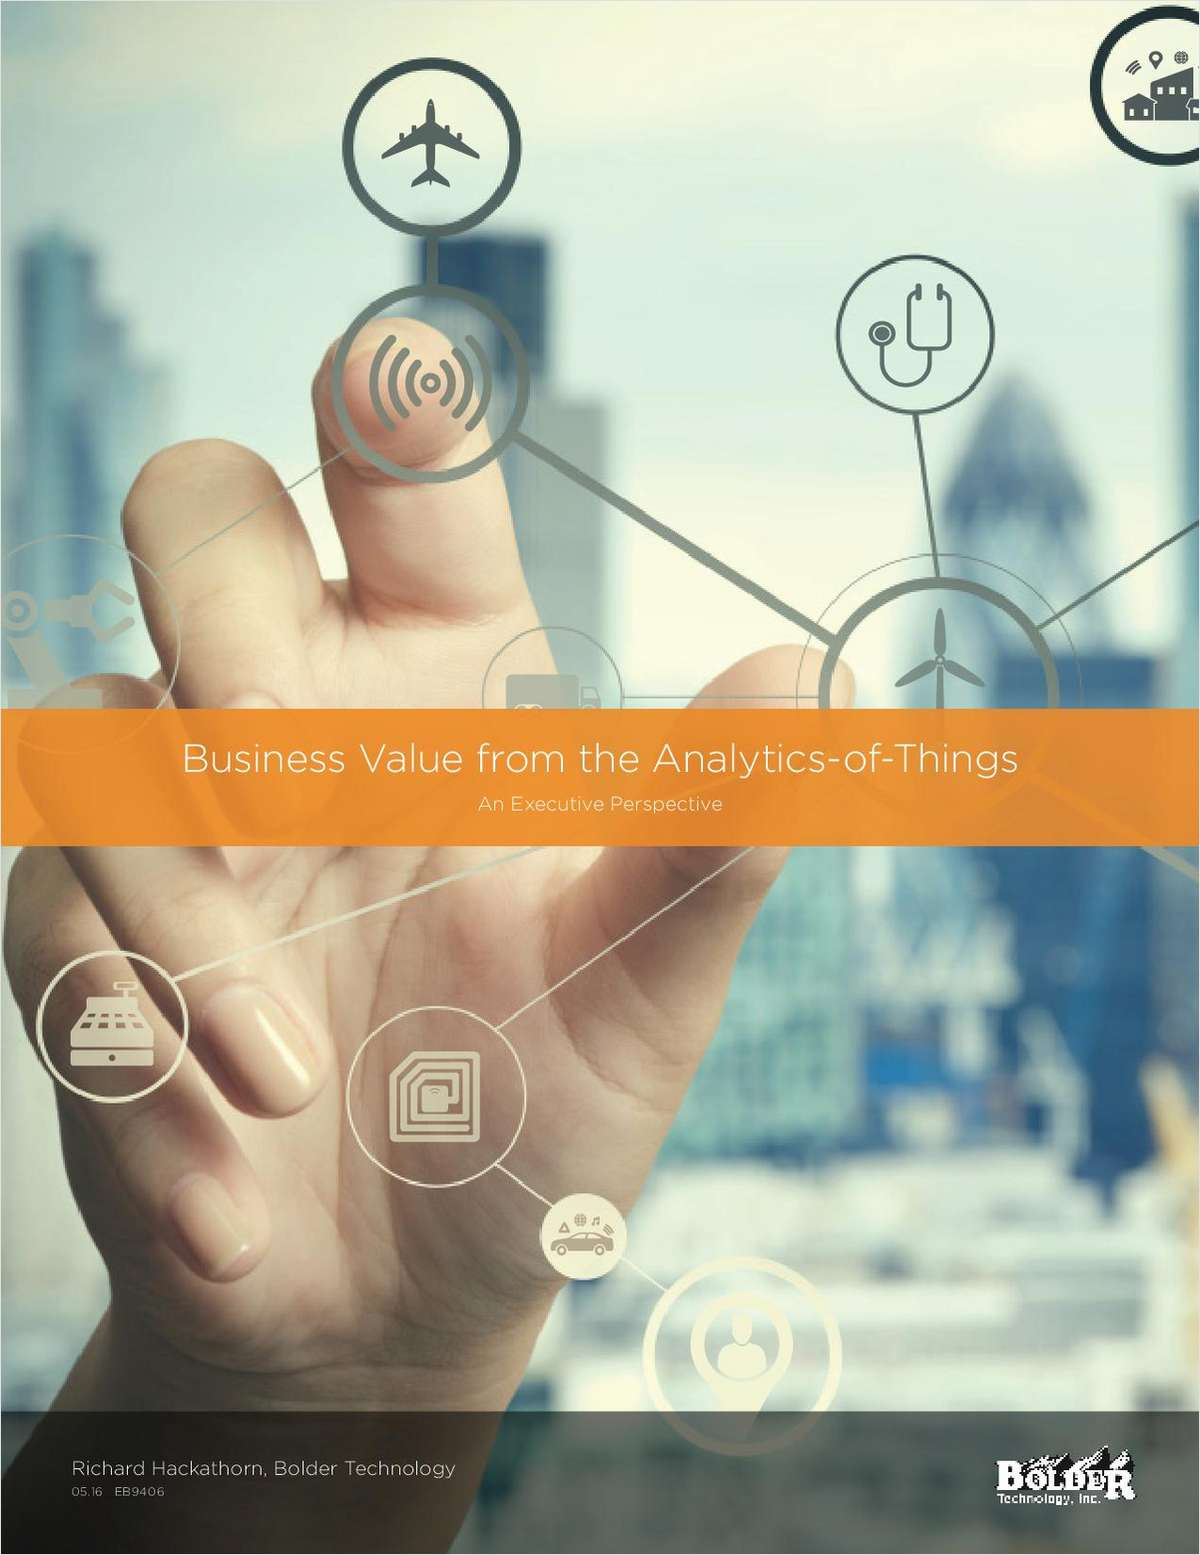 Business Value of the Analytics-of-Things